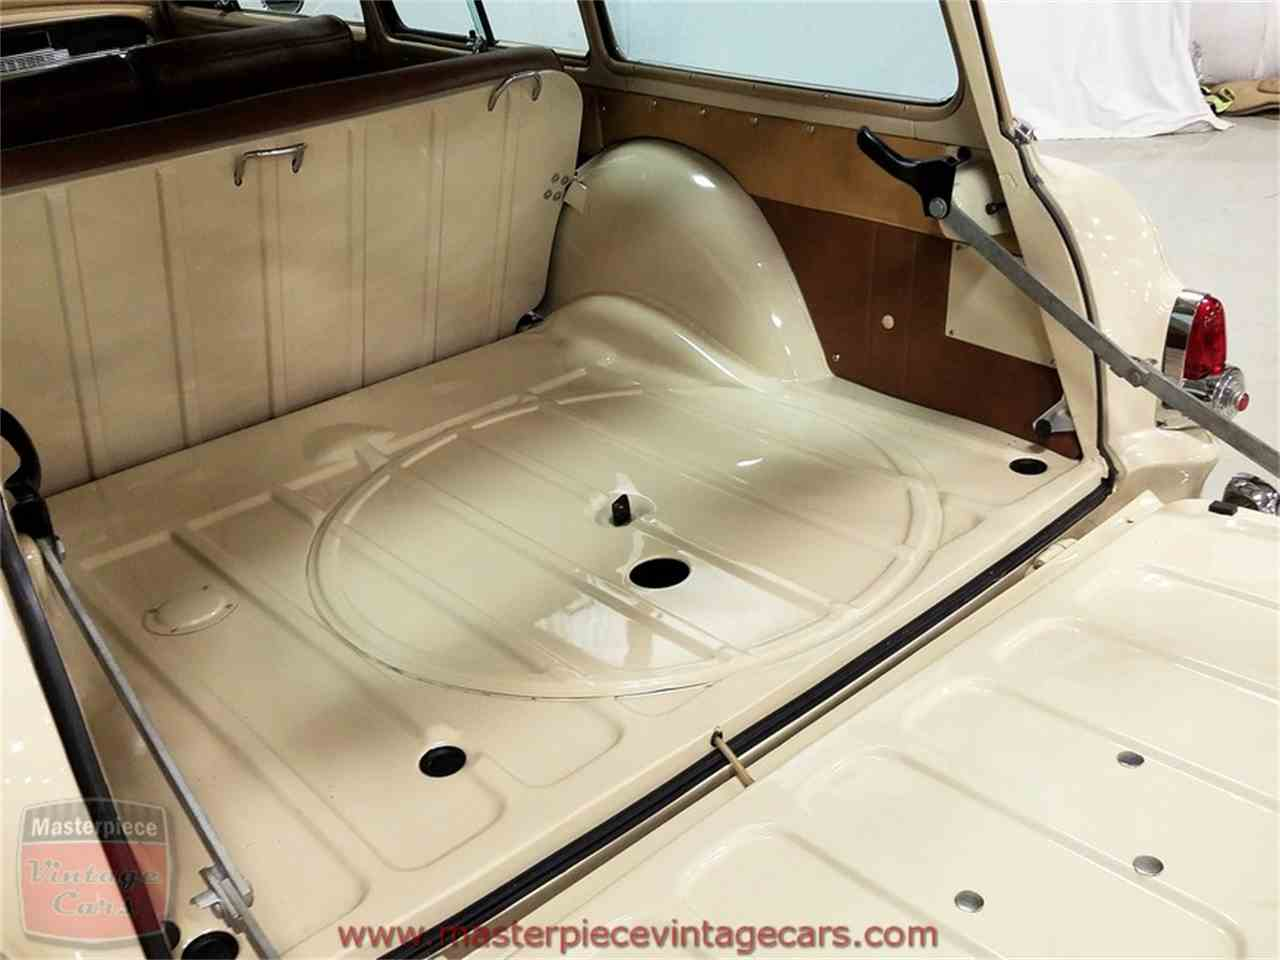 Large Picture of 1954 Plymouth Plaza Suburban Offered by Masterpiece Vintage Cars - KV49